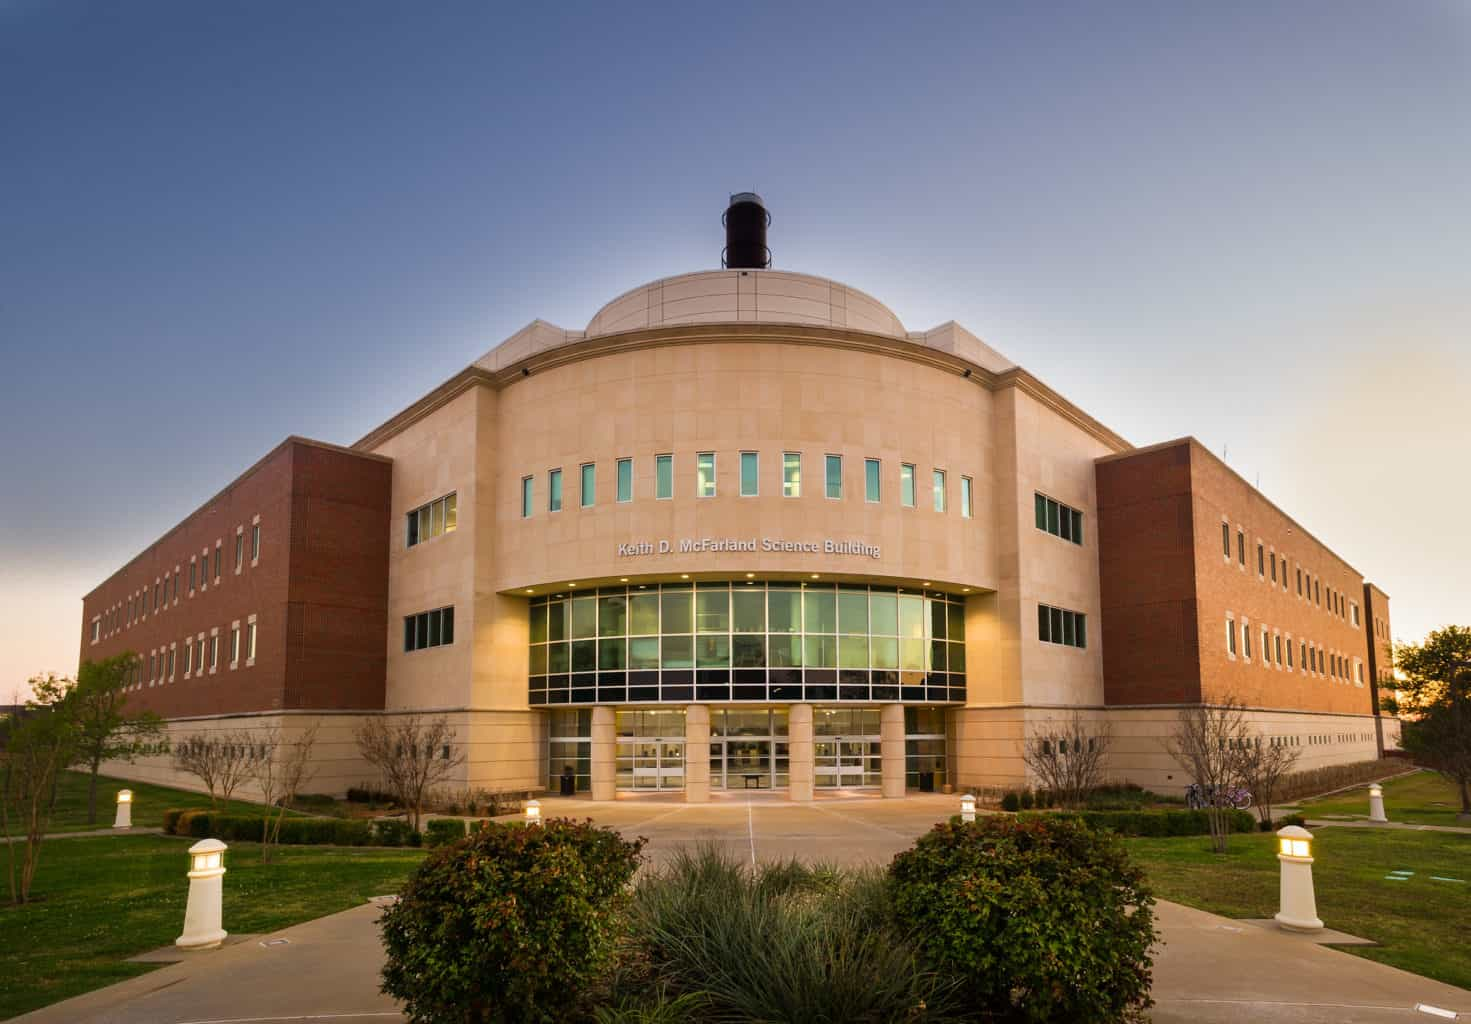 Image of the science building.